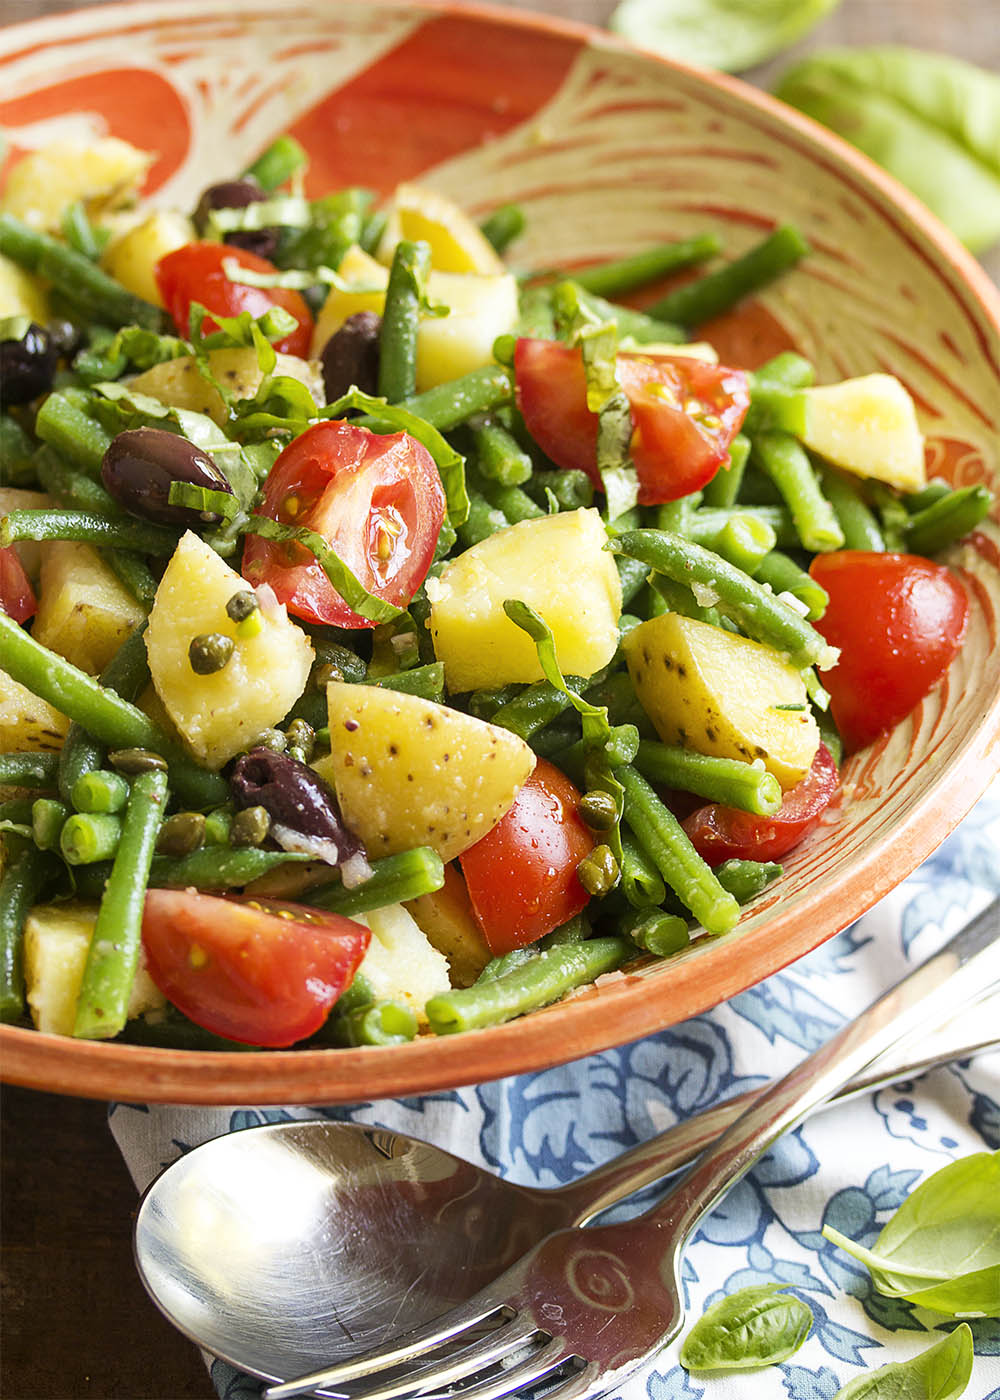 Potato Salad Nicoise - This tasty and relaxed version of salad nicoise mixes green beans, potatoes, olives, and tomatoes with a lemony, anchovy spiked dressing. Add all the ingredients to the salad bowl, toss with the dressing, and dinner is served!   justalittlebitofbacon.com